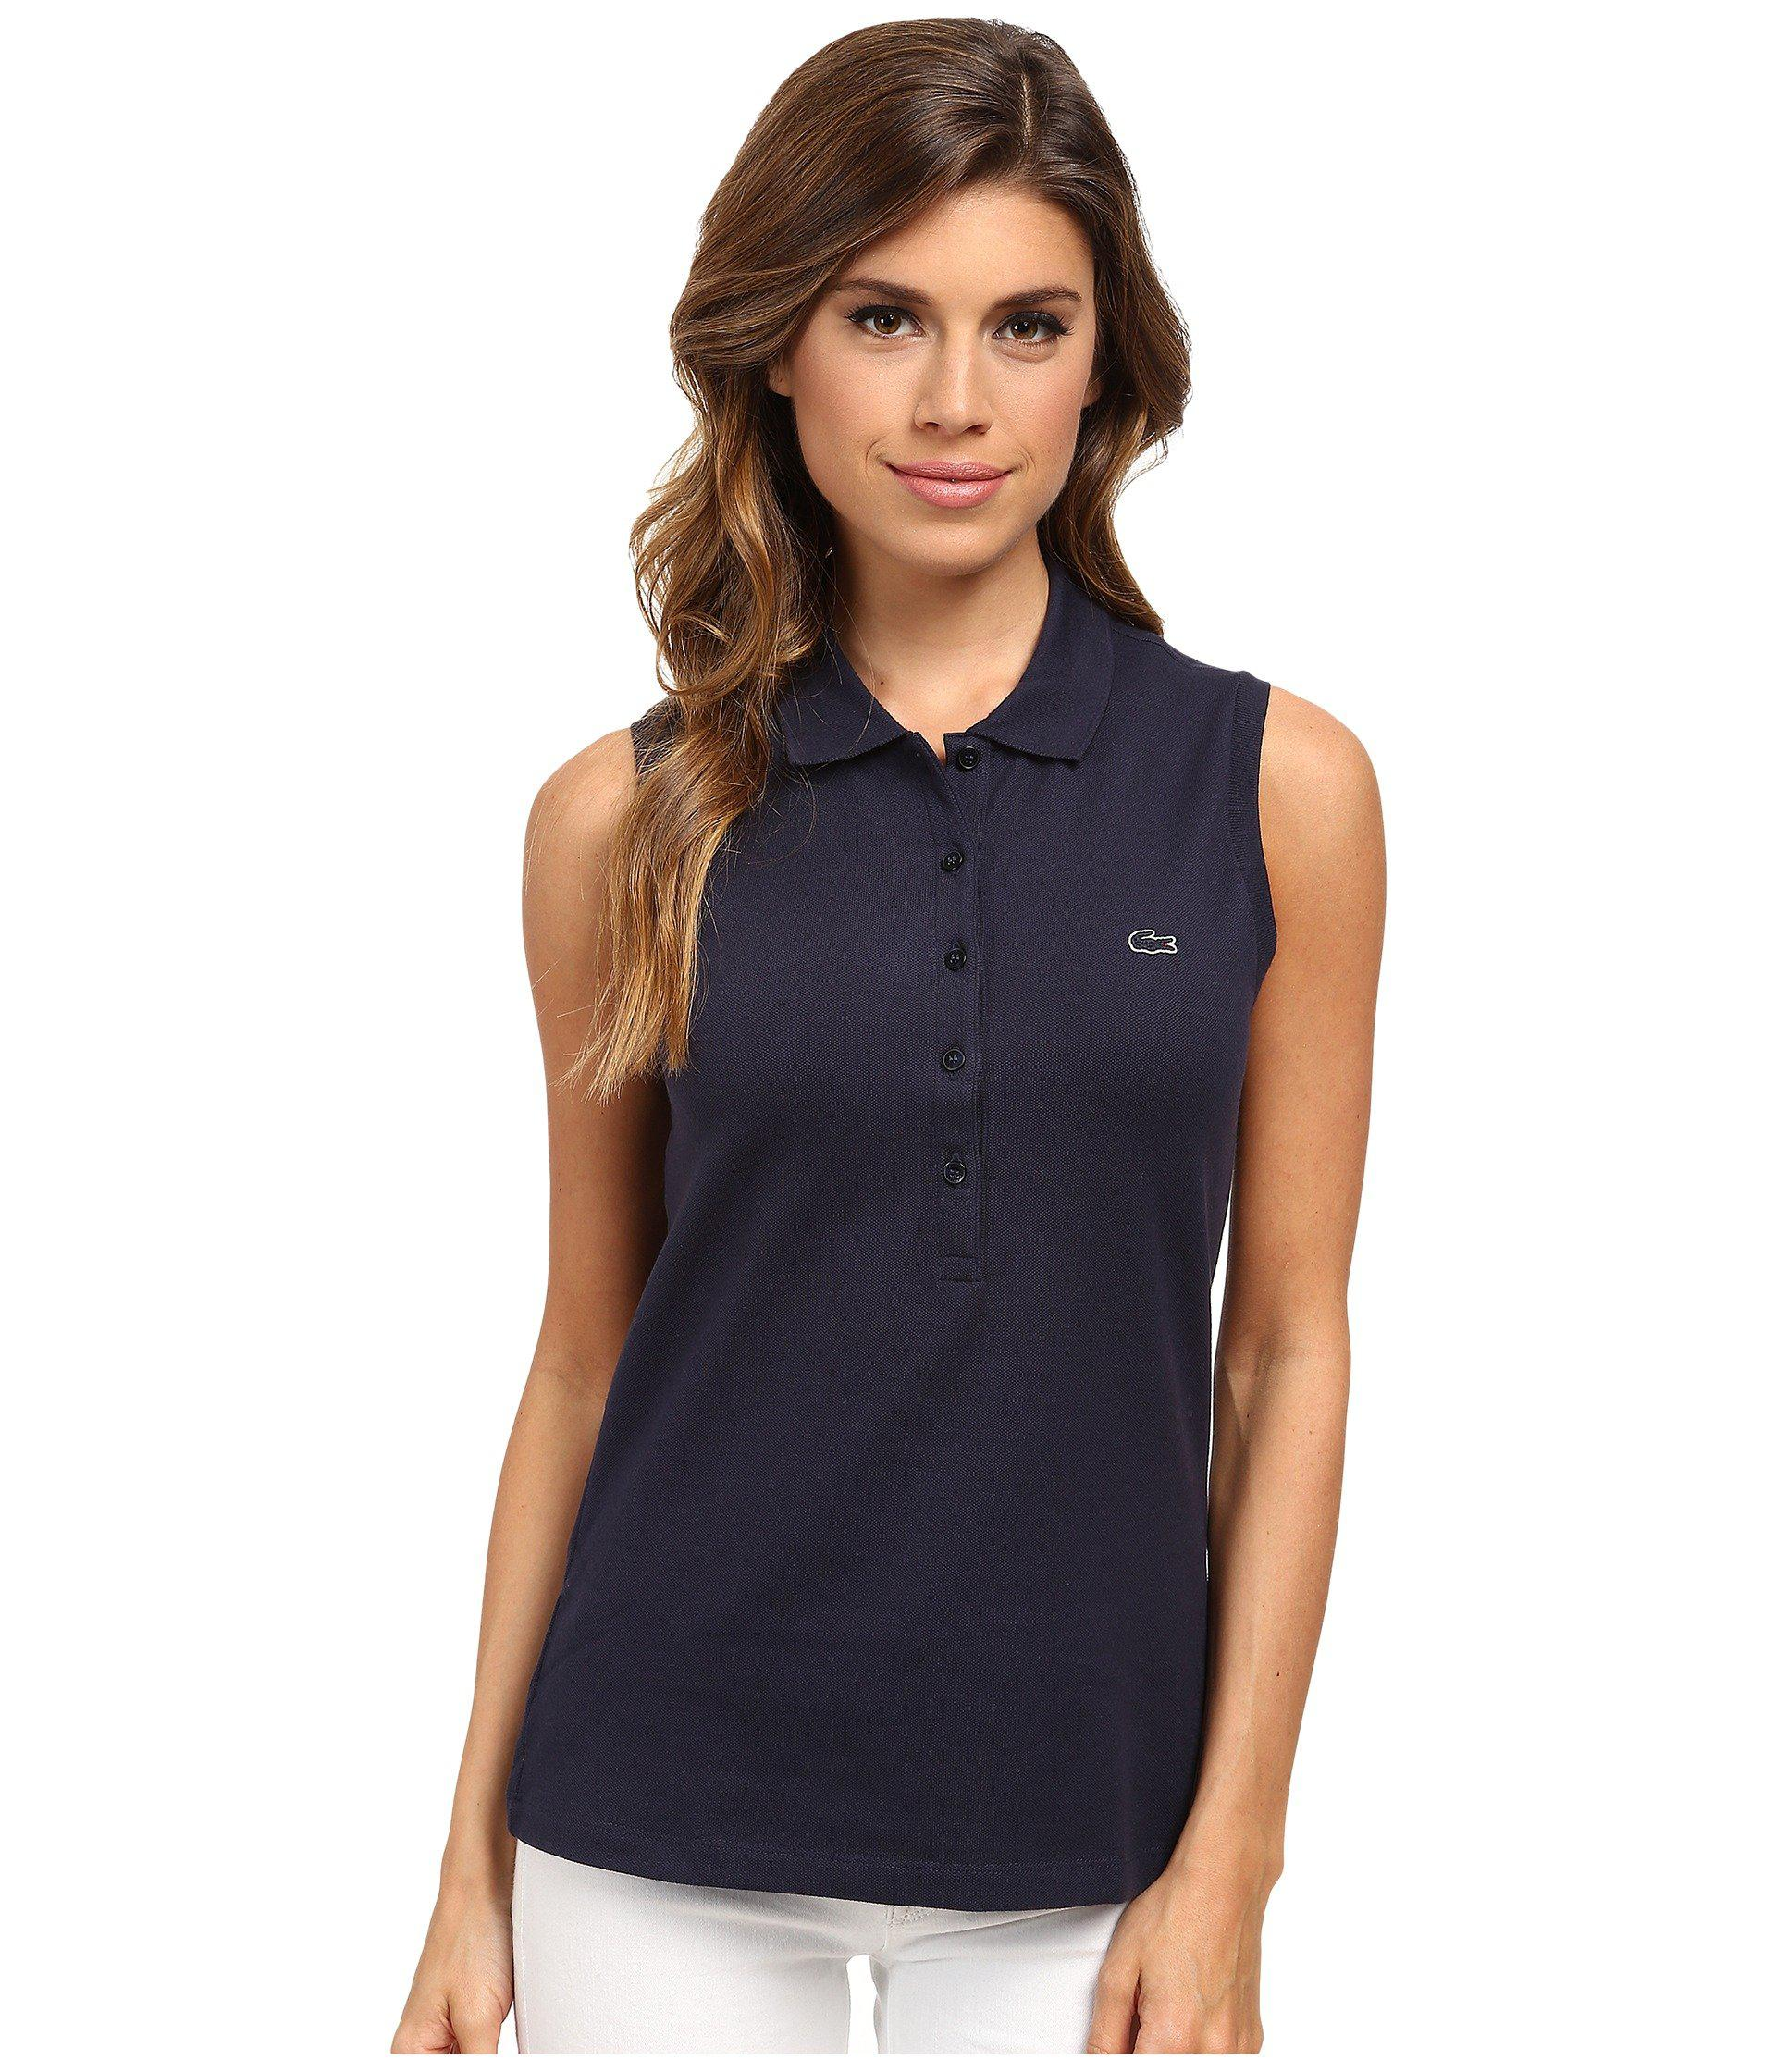 6737500bfd Lyst - Lacoste Sleeveless Slim Fit Stretch Pique Polo Shirt in Blue